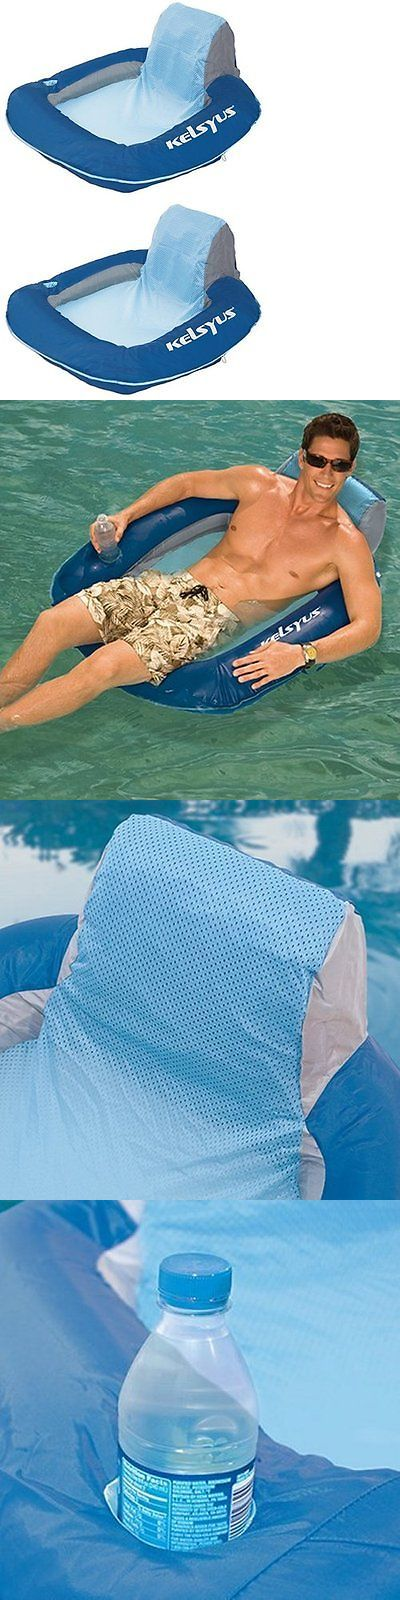 Floats and Rafts 181055: Kelsyus Floating Pool Lounger Inflatable Chair - Blue (Set Of 2) | 80035 -> BUY IT NOW ONLY: $52.99 on eBay!